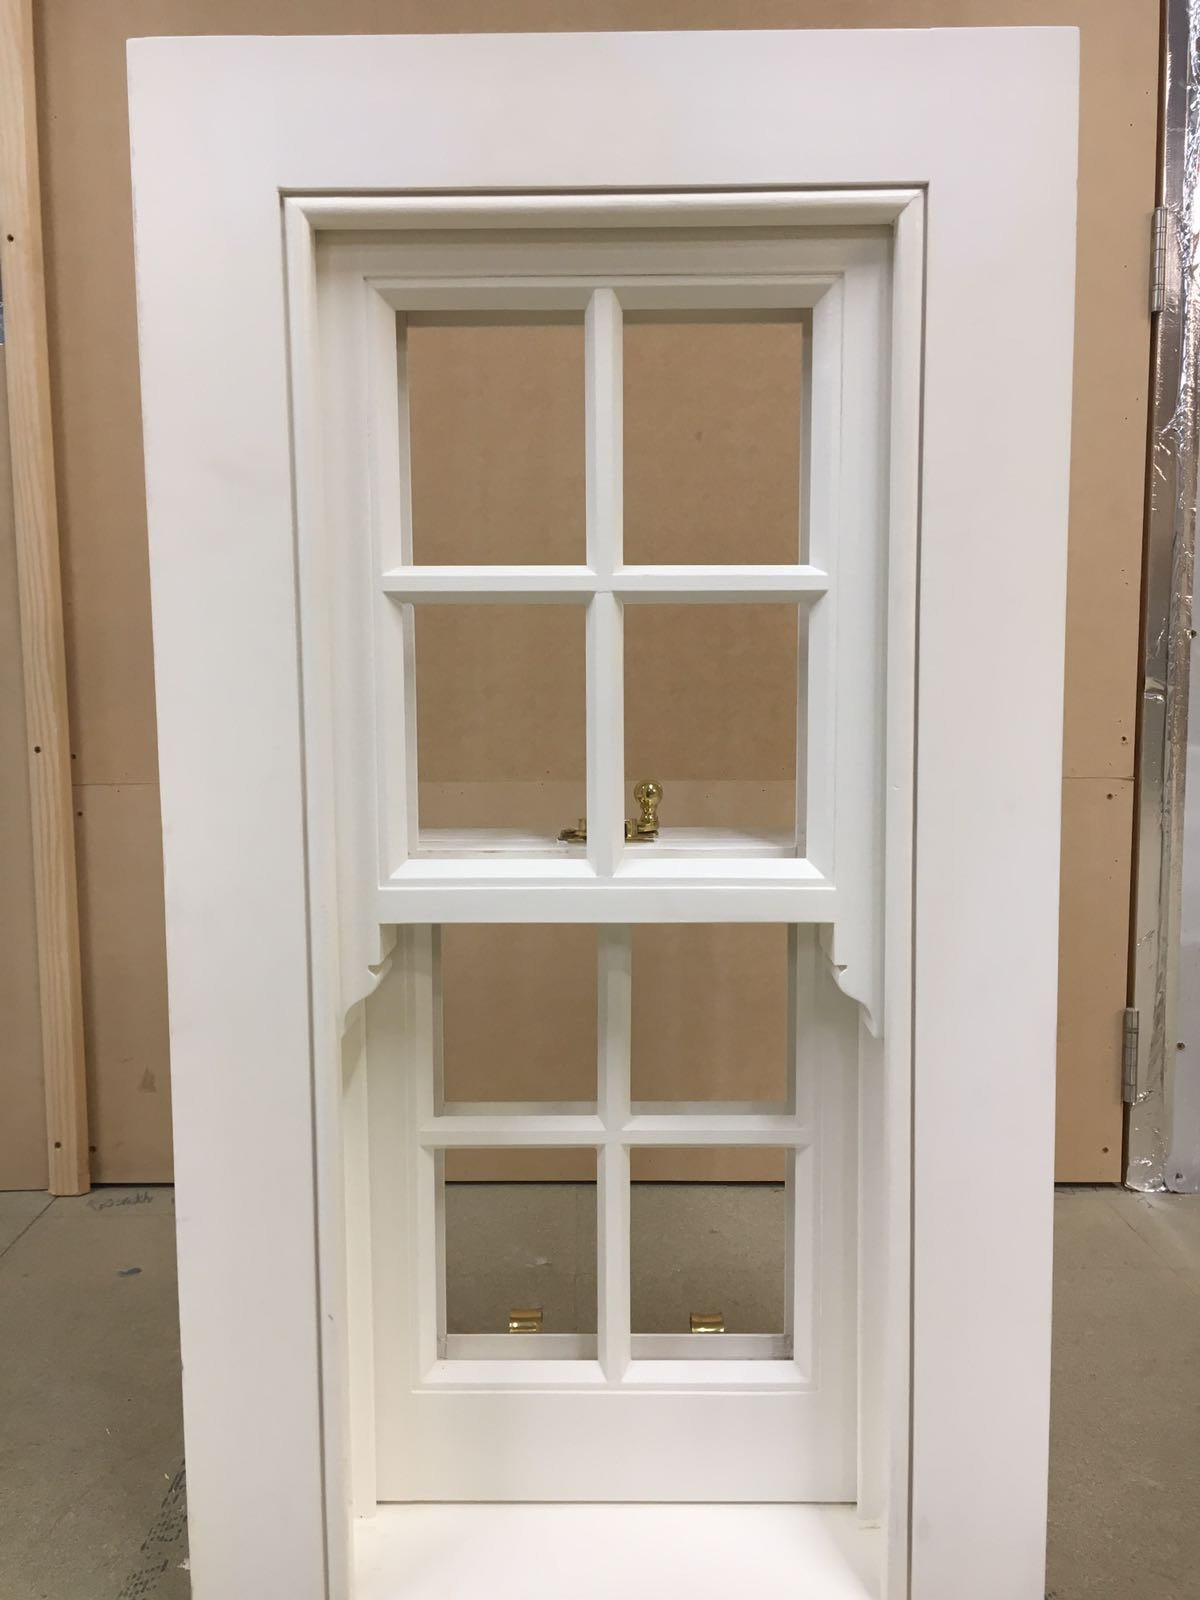 Timber Sash window painted in Herefordshire